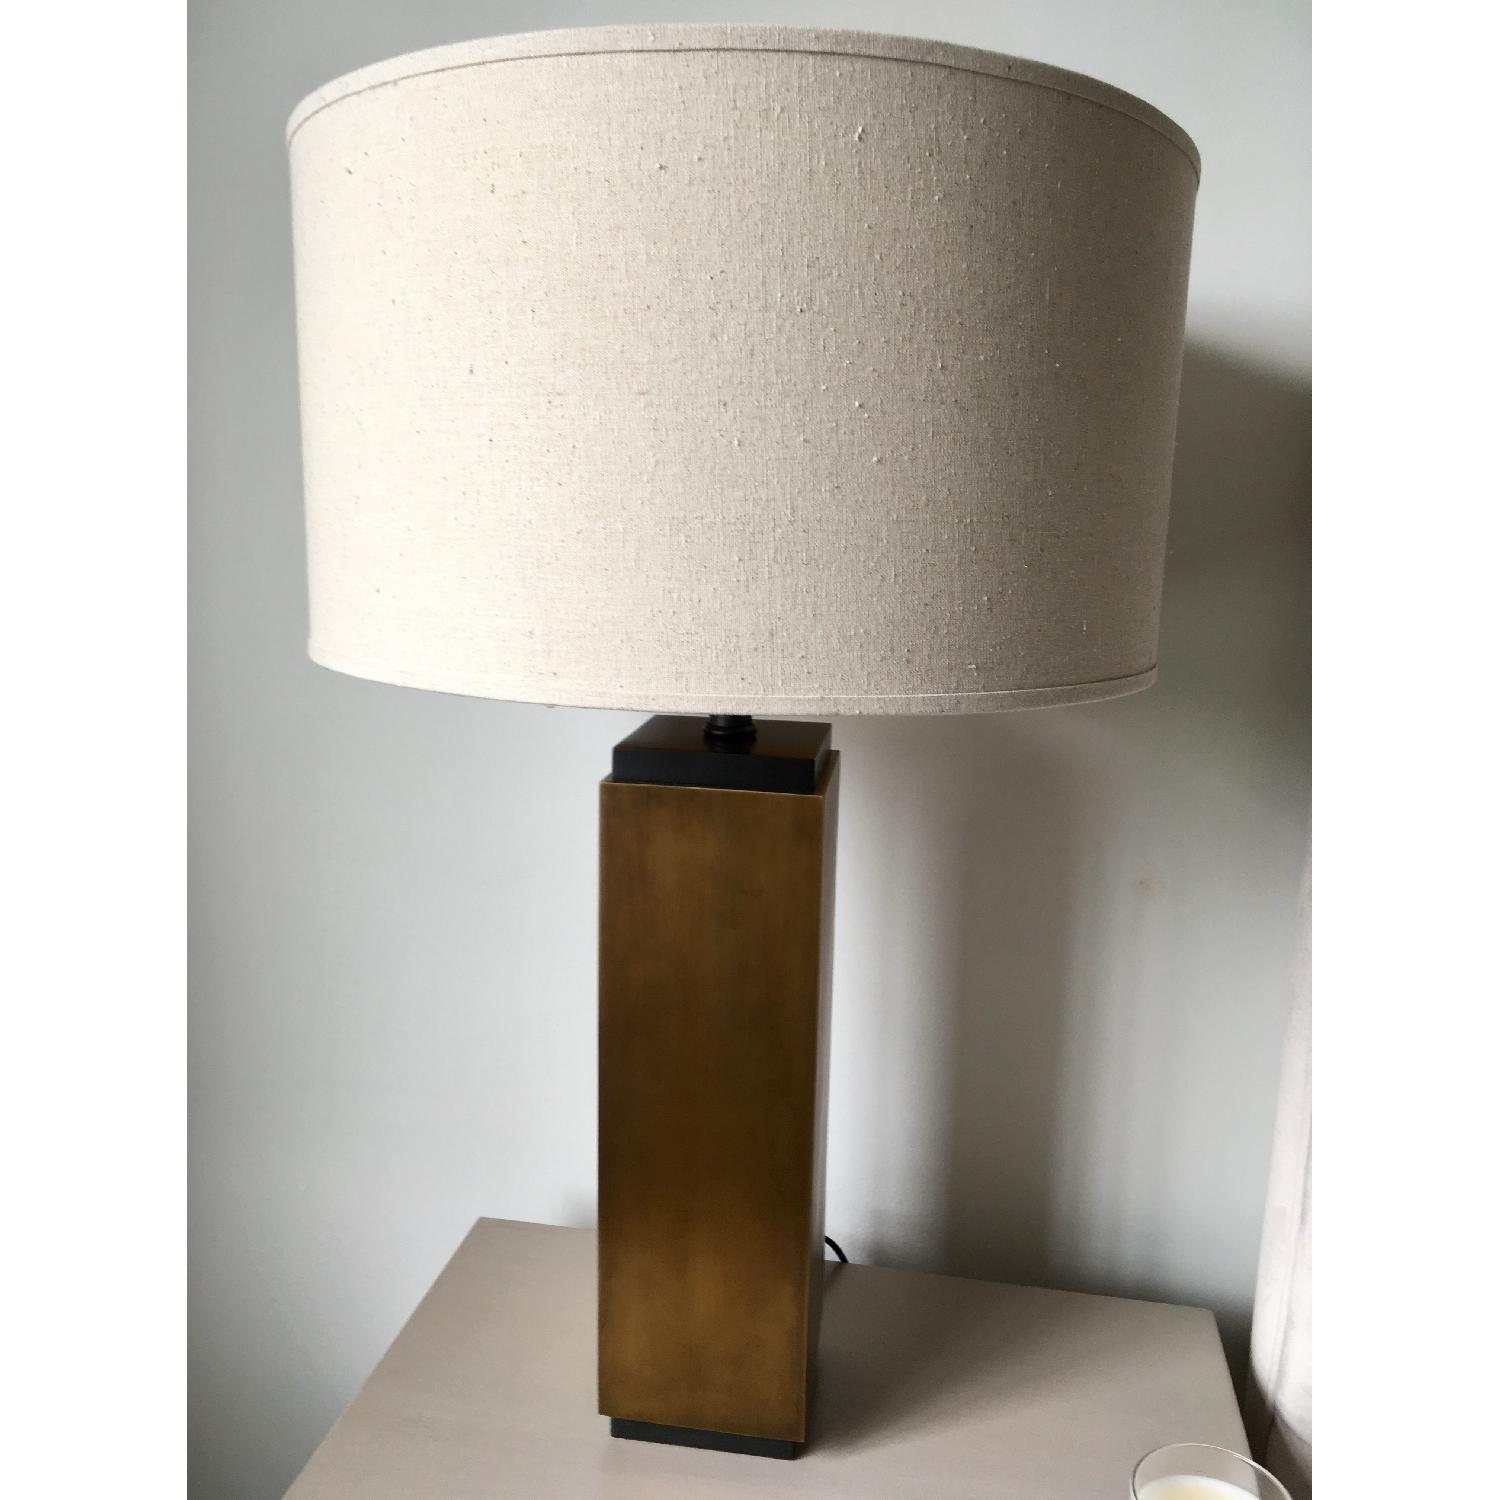 Restoration Hardware Square Column Accent Lamps - image-1